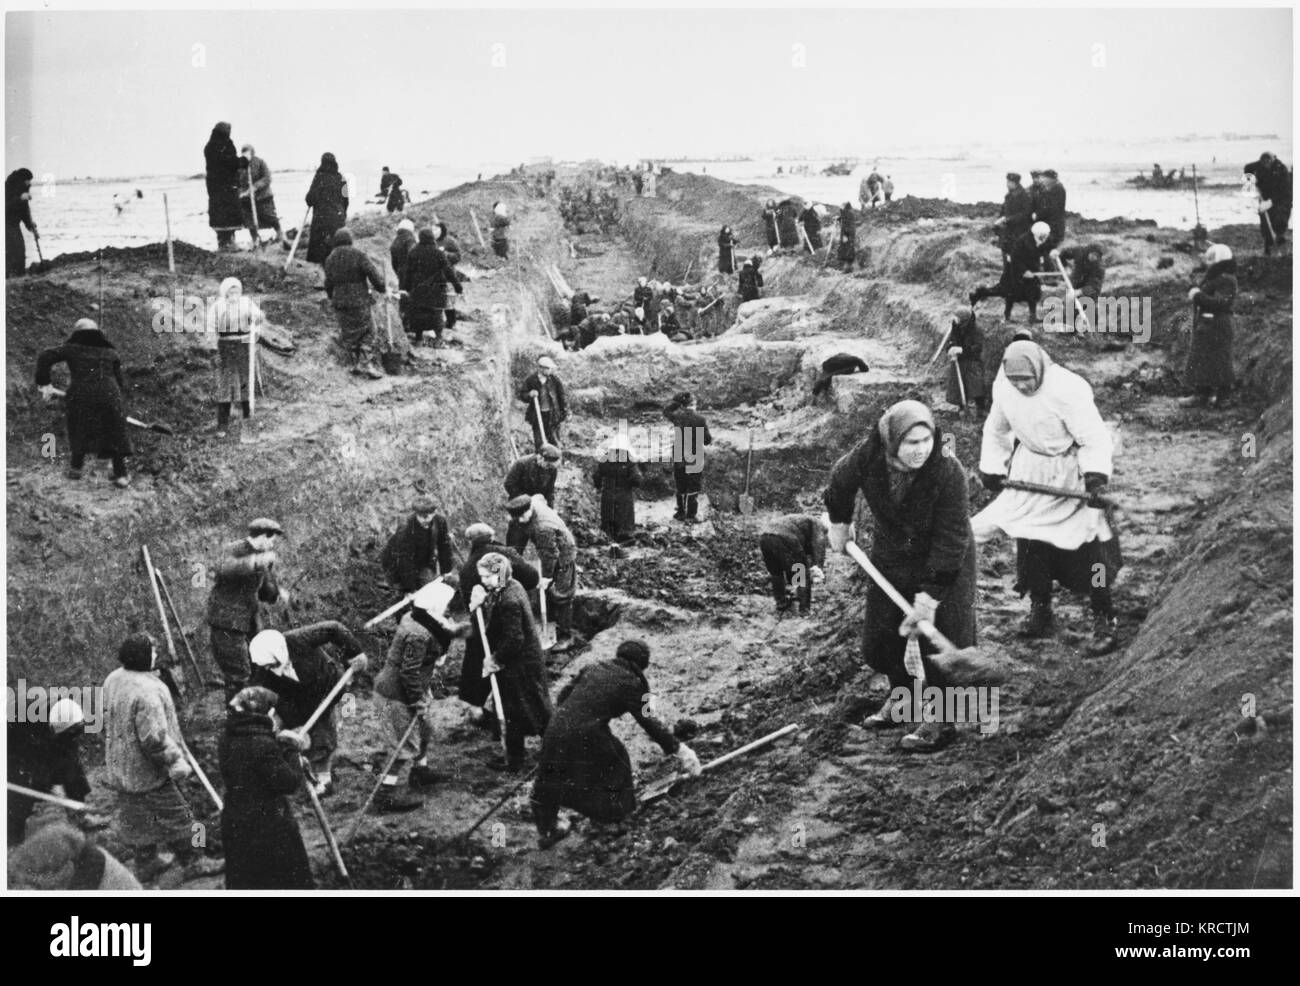 Approximately half a million Muscovites take part in the digging of anti-tank ditches around Moscow. Date: 1941 - Stock Image